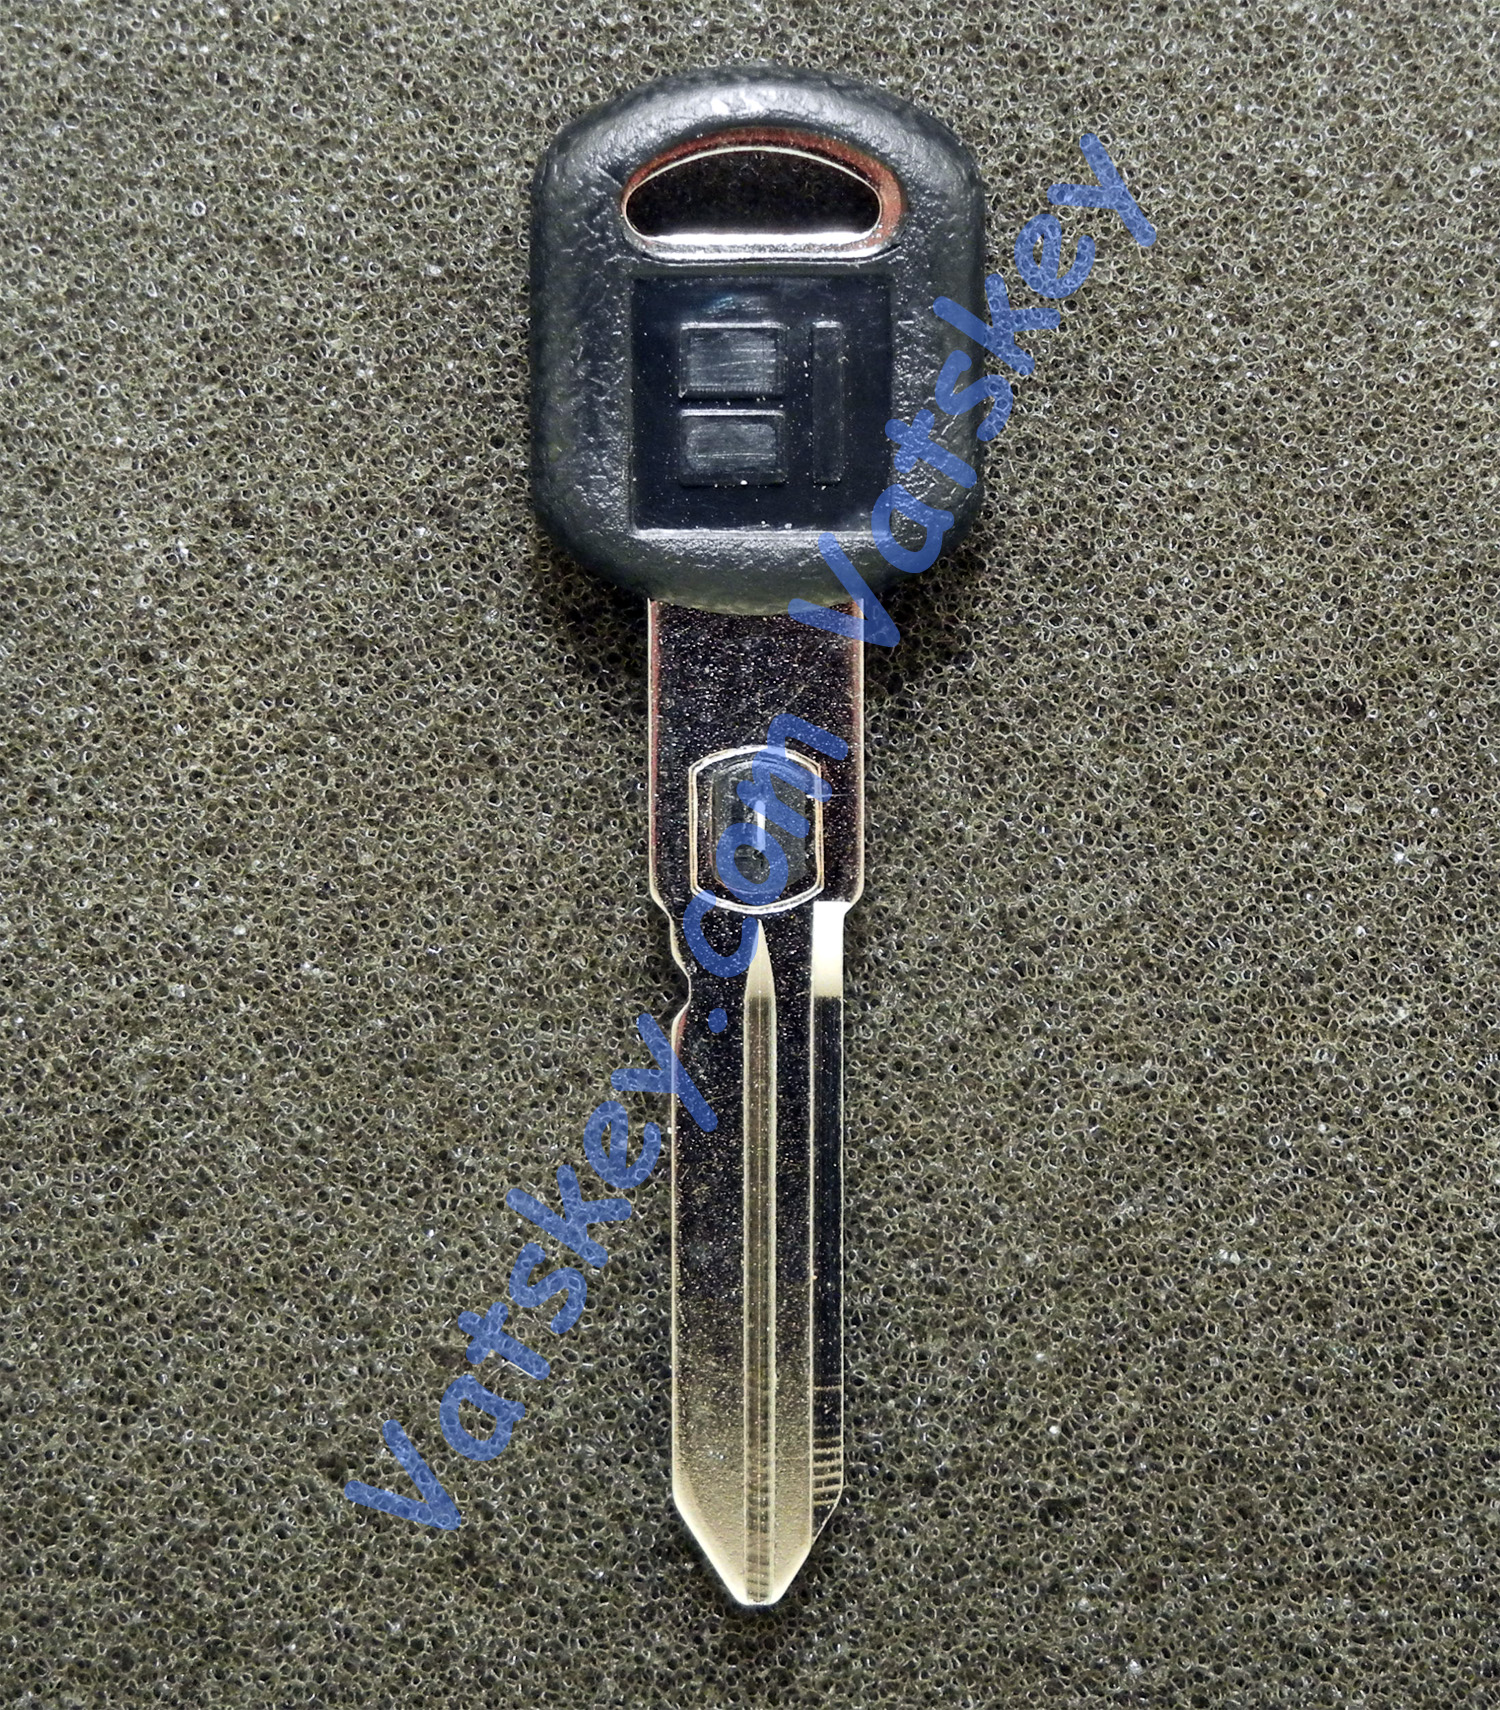 OEM Vats Keys and secondary keys for GM vehicles and help decoding a